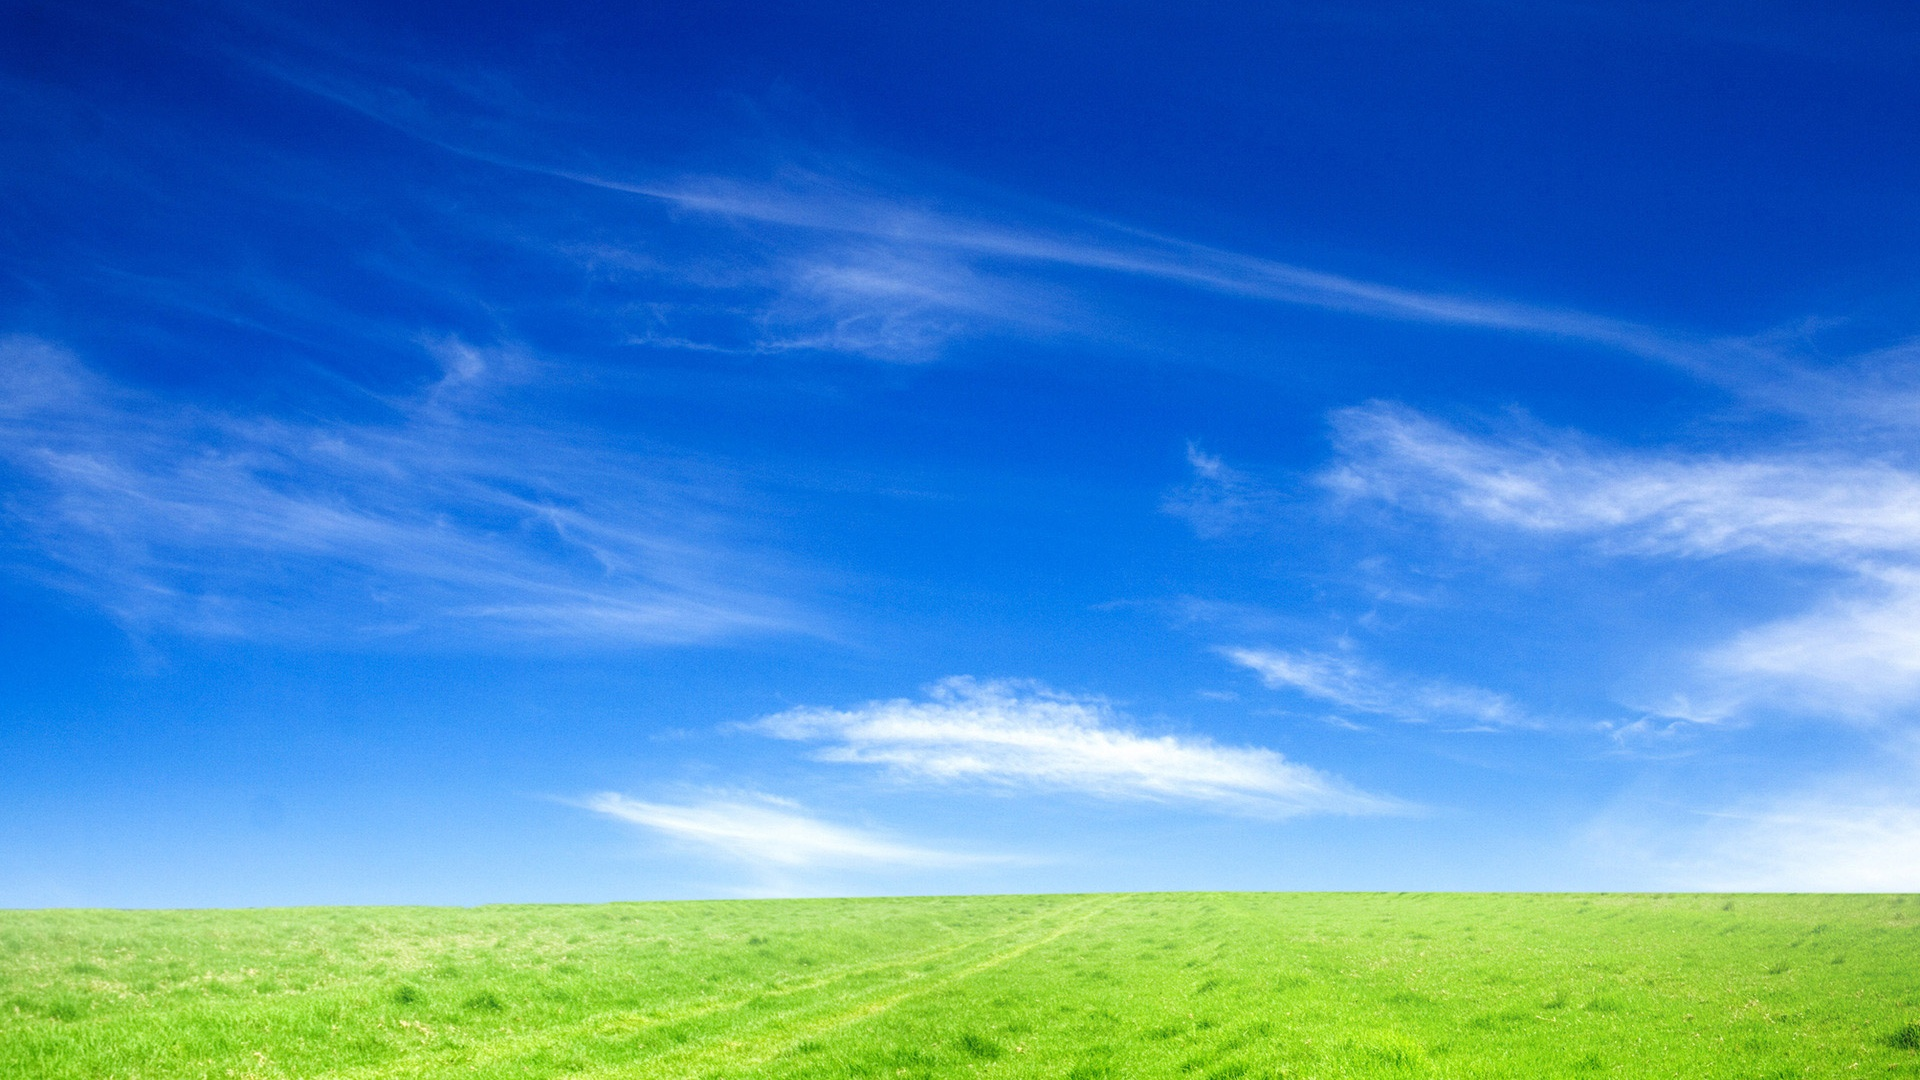 Alone Girl On Beach Wallpaper Blue Sky And Green Grass Wallpapers In Jpg Format For Free